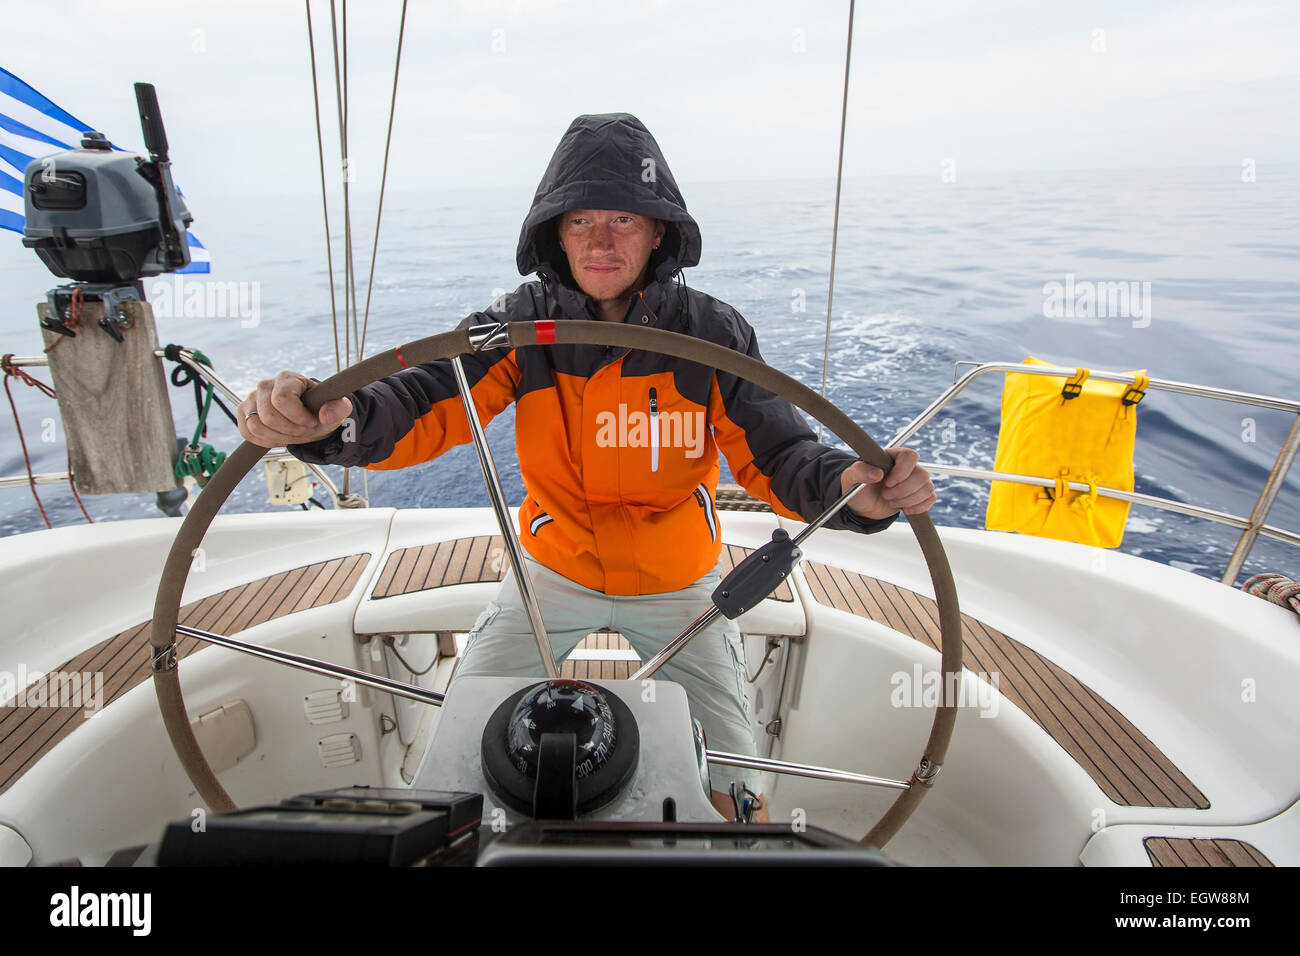 Young man skipper in the sea at the helm of a sailing yacht. Stock Photo